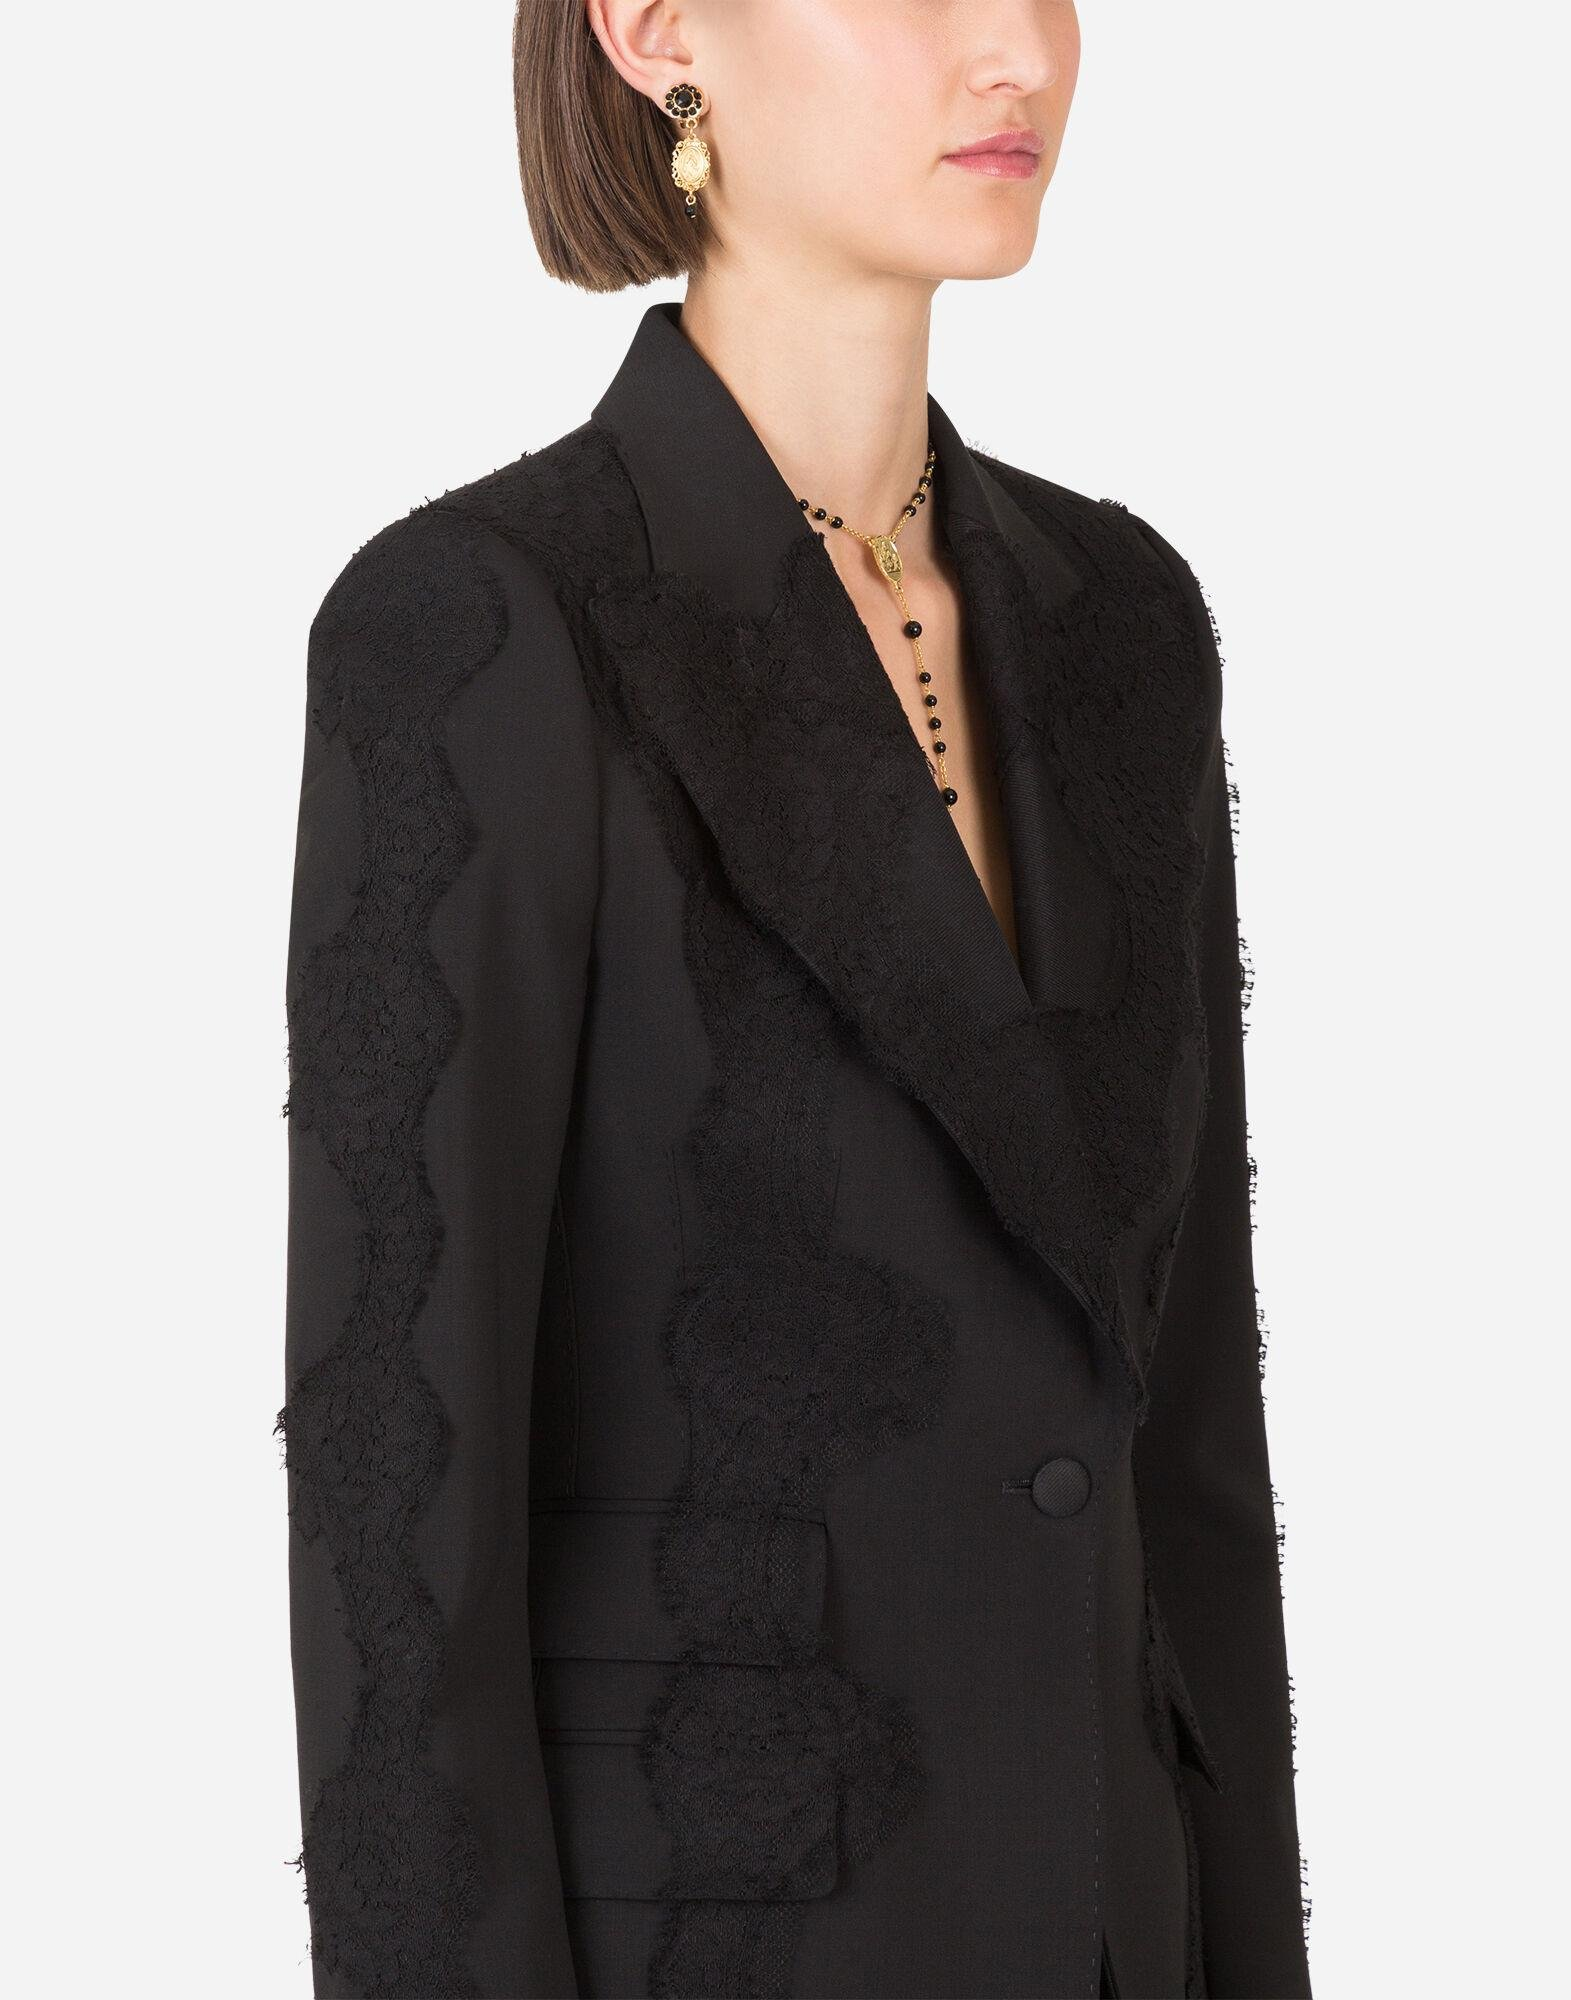 Single-breasted woolen blazer with lace details 2